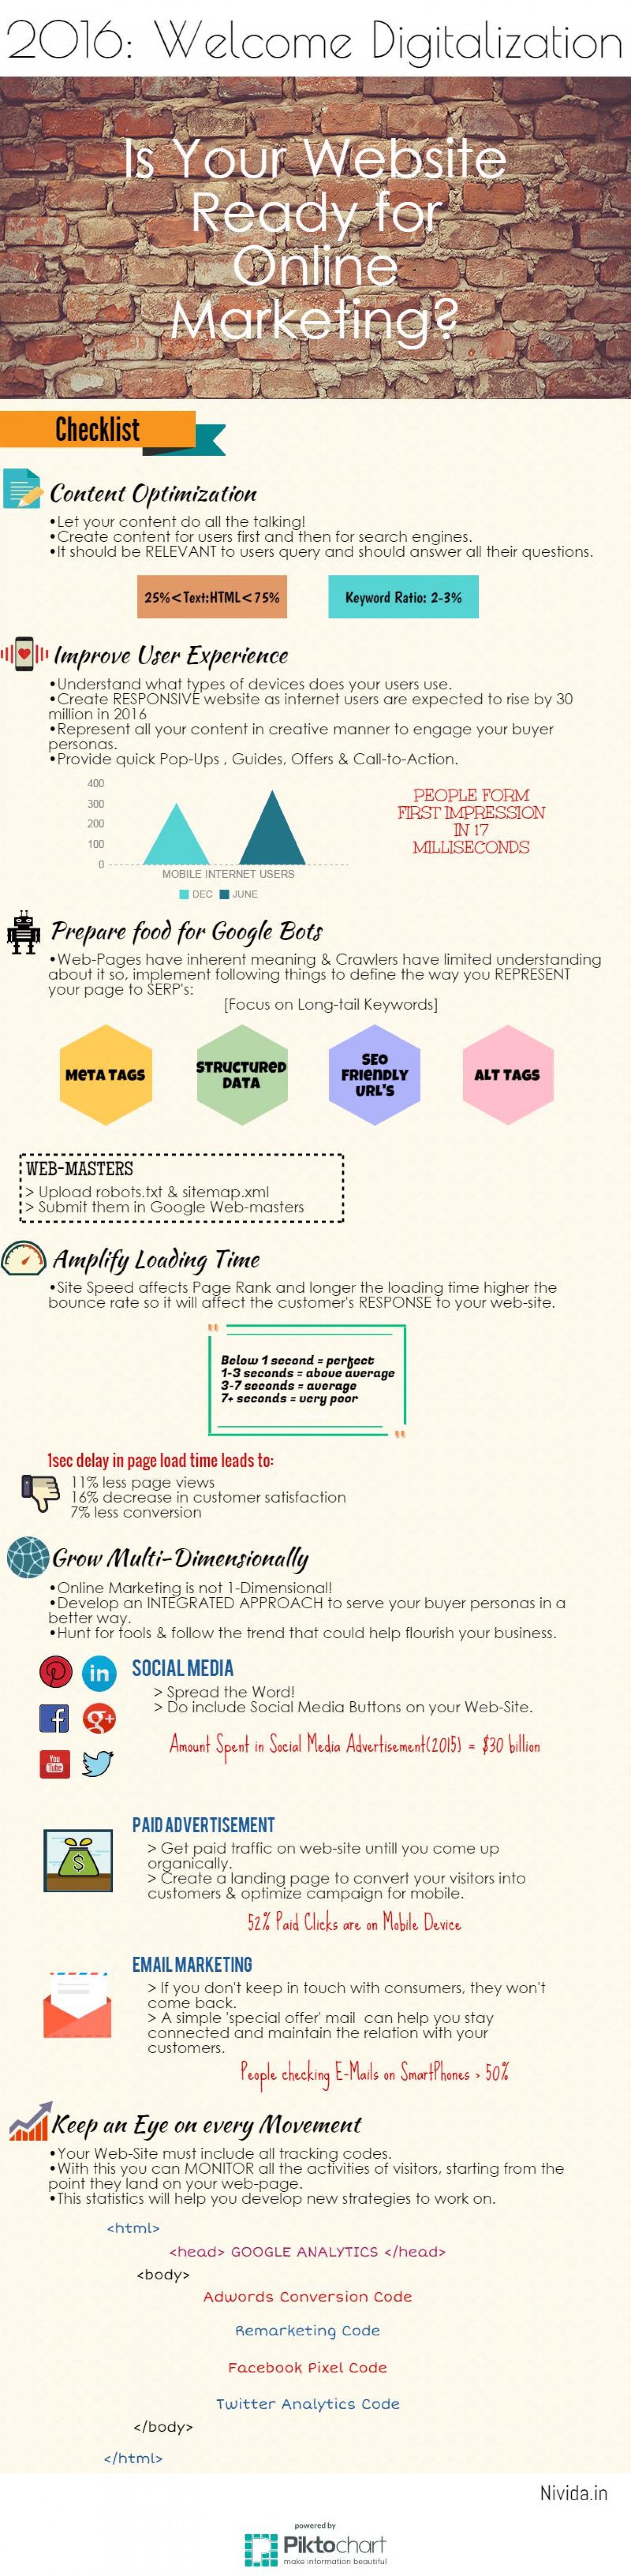 how to make your website ready for online marketing ly how to make your website ready for online marketing infographic